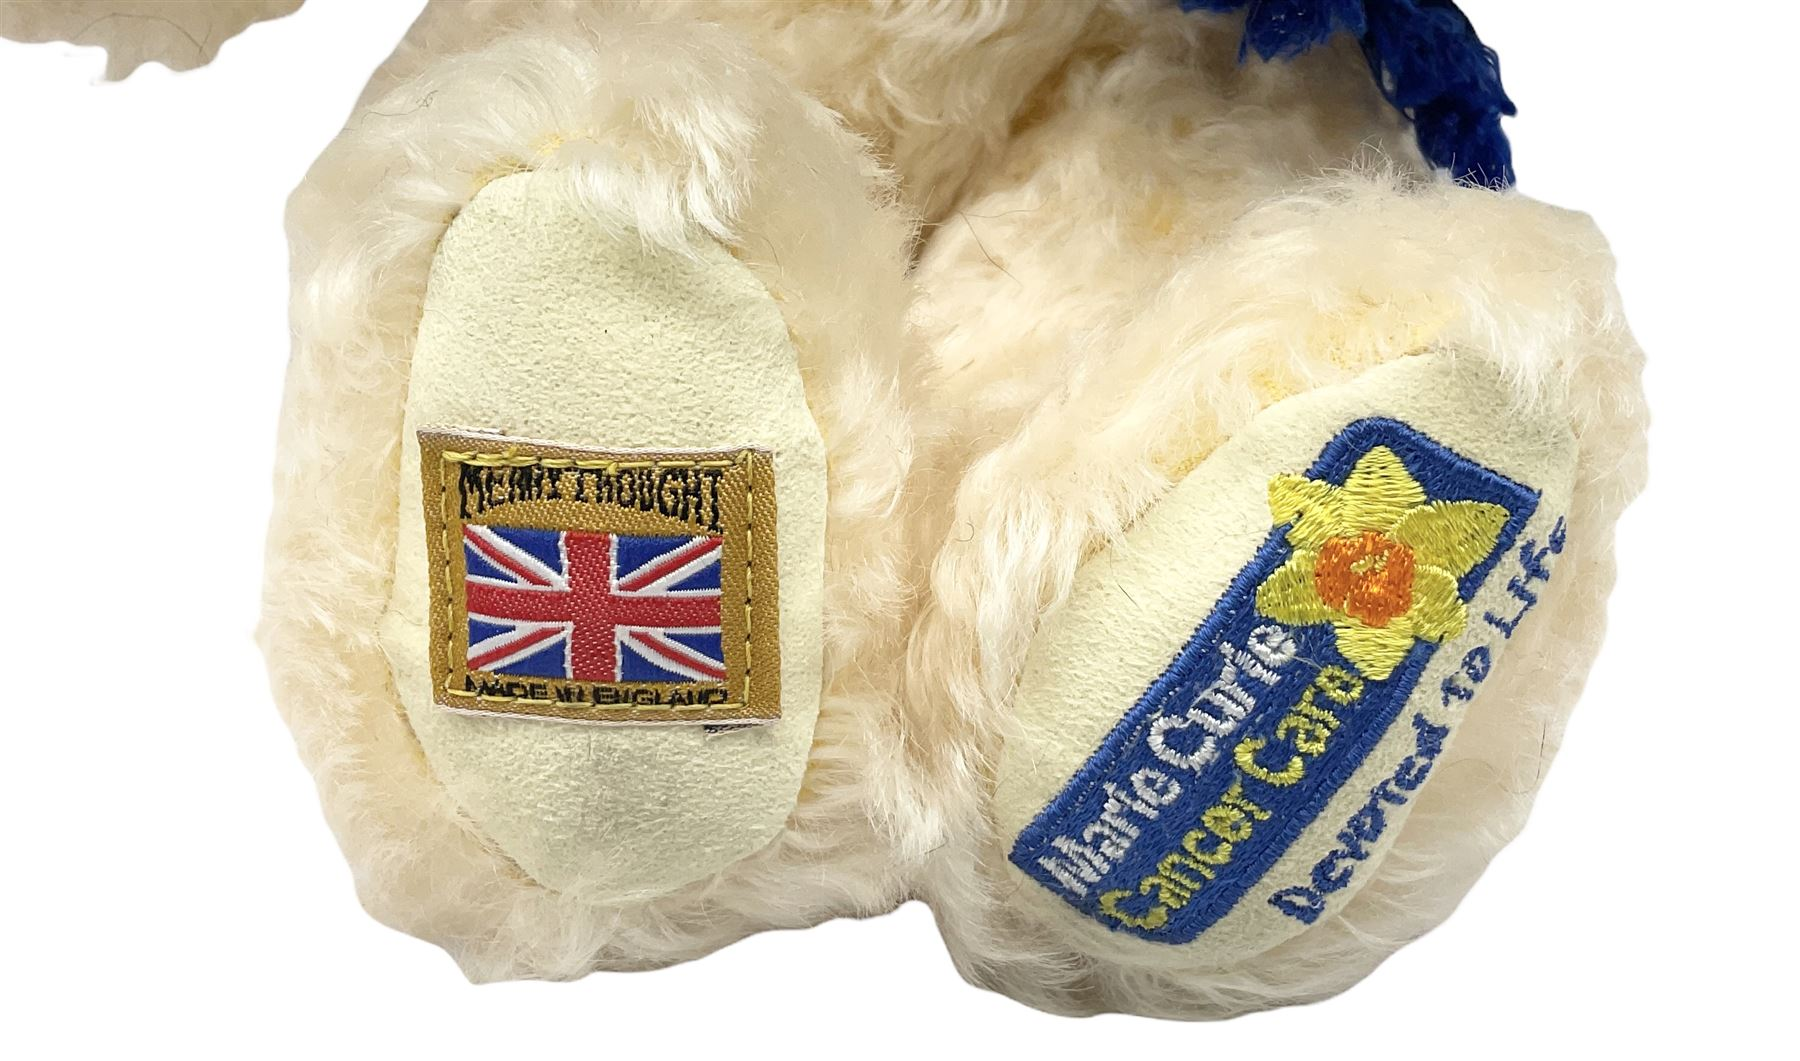 Merrythought - two modern limited edition bears comprising 'Nanook The Polar Bear Club' No.213/2450; - Image 3 of 6